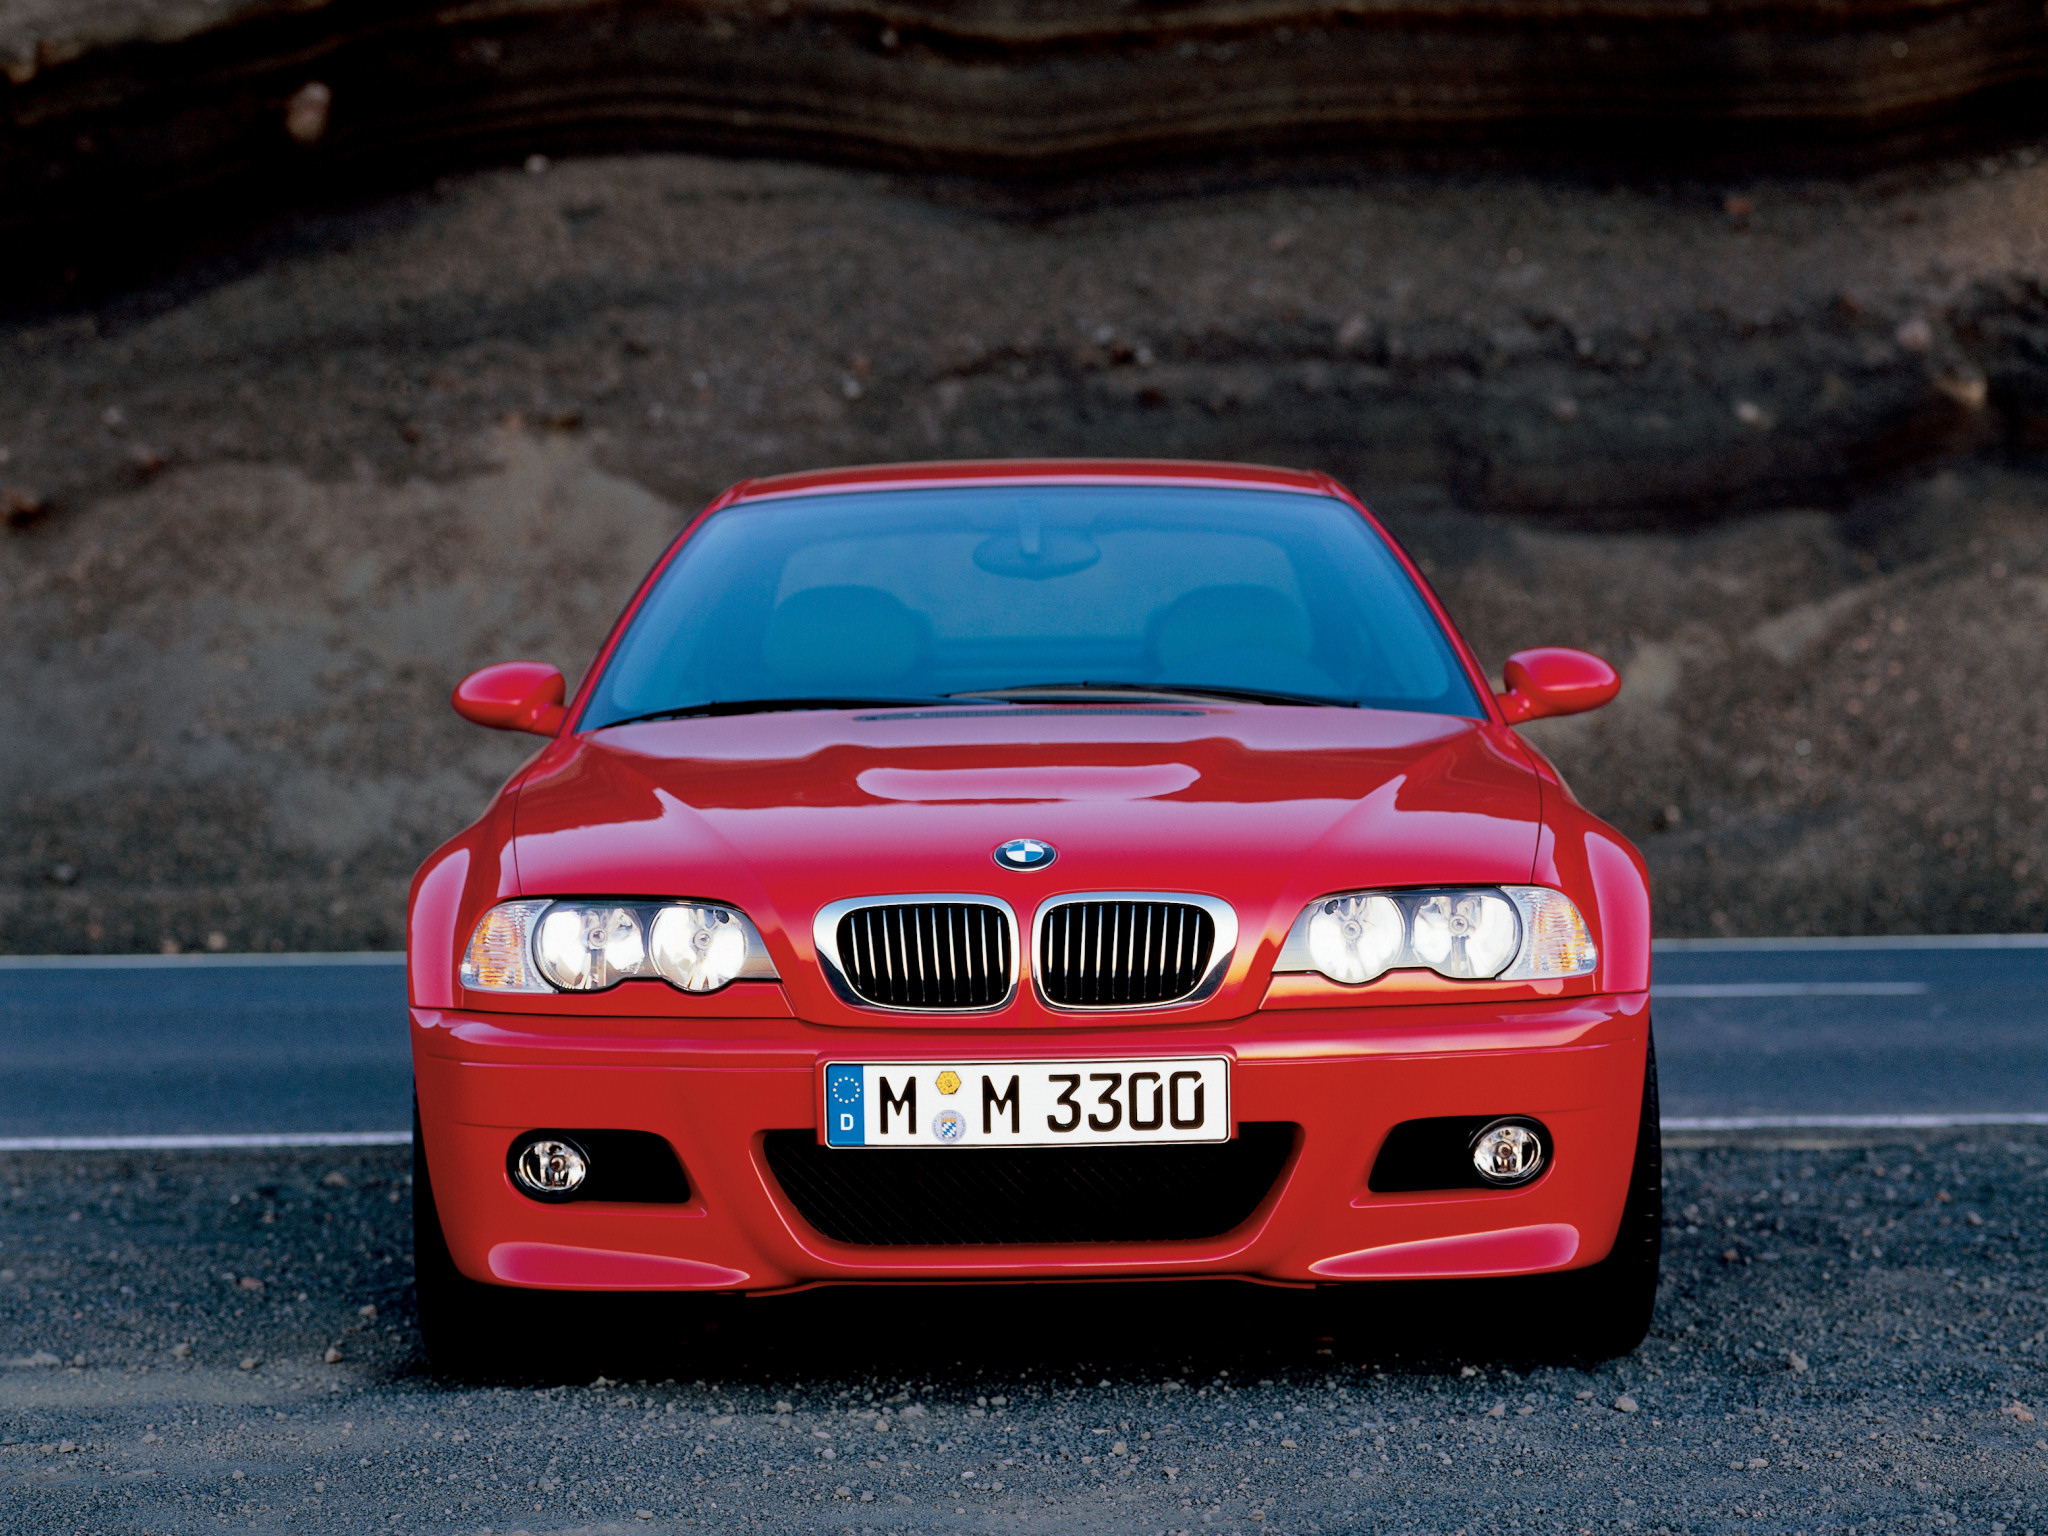 bmw m3 2000 bmw m3 2000 photo 25 car in pictures car photo gallery. Black Bedroom Furniture Sets. Home Design Ideas